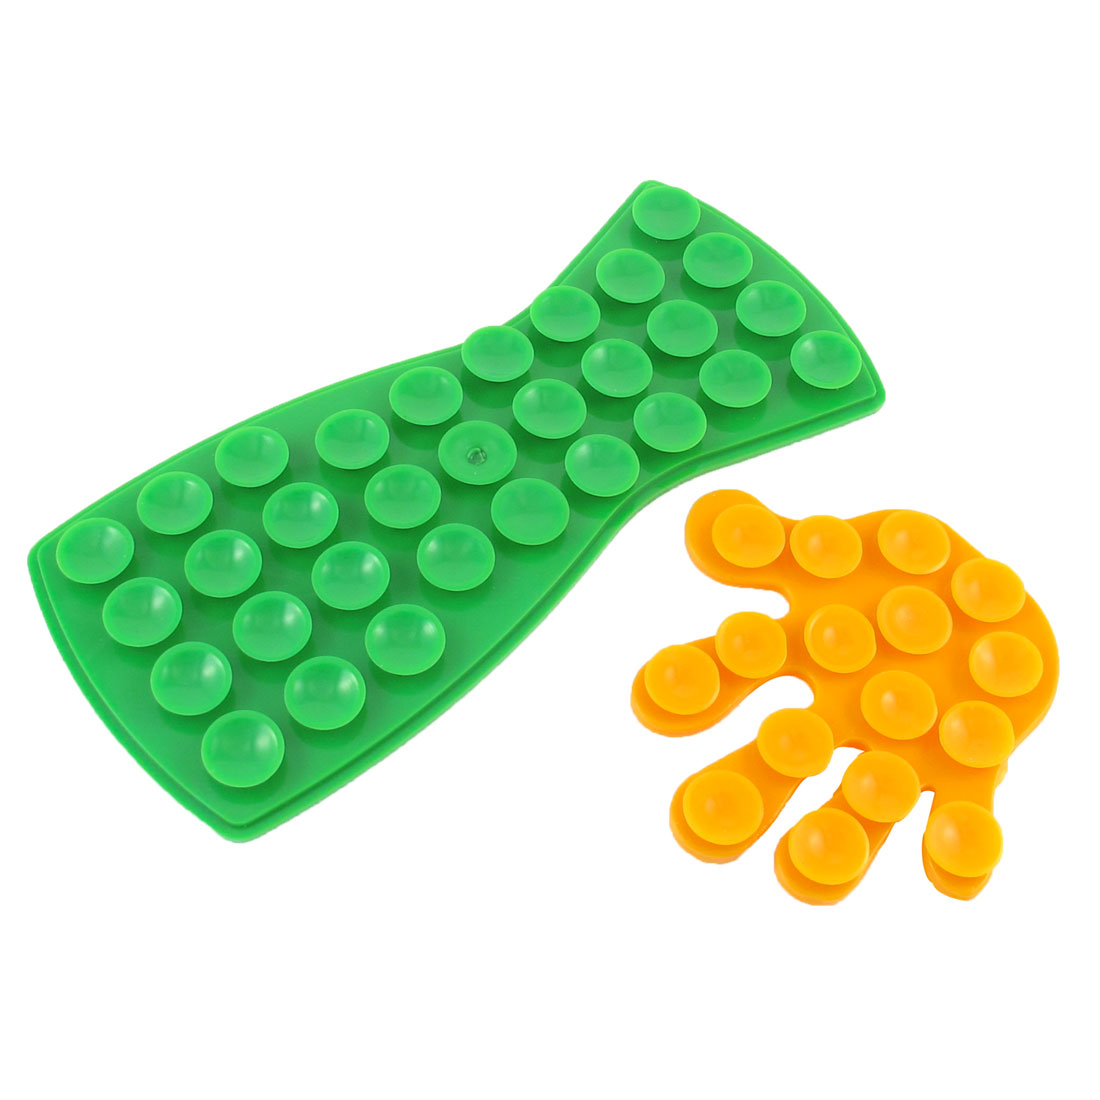 2 in 1 Green Dark Yellow Double Sides Suction Cup Pad Sticker